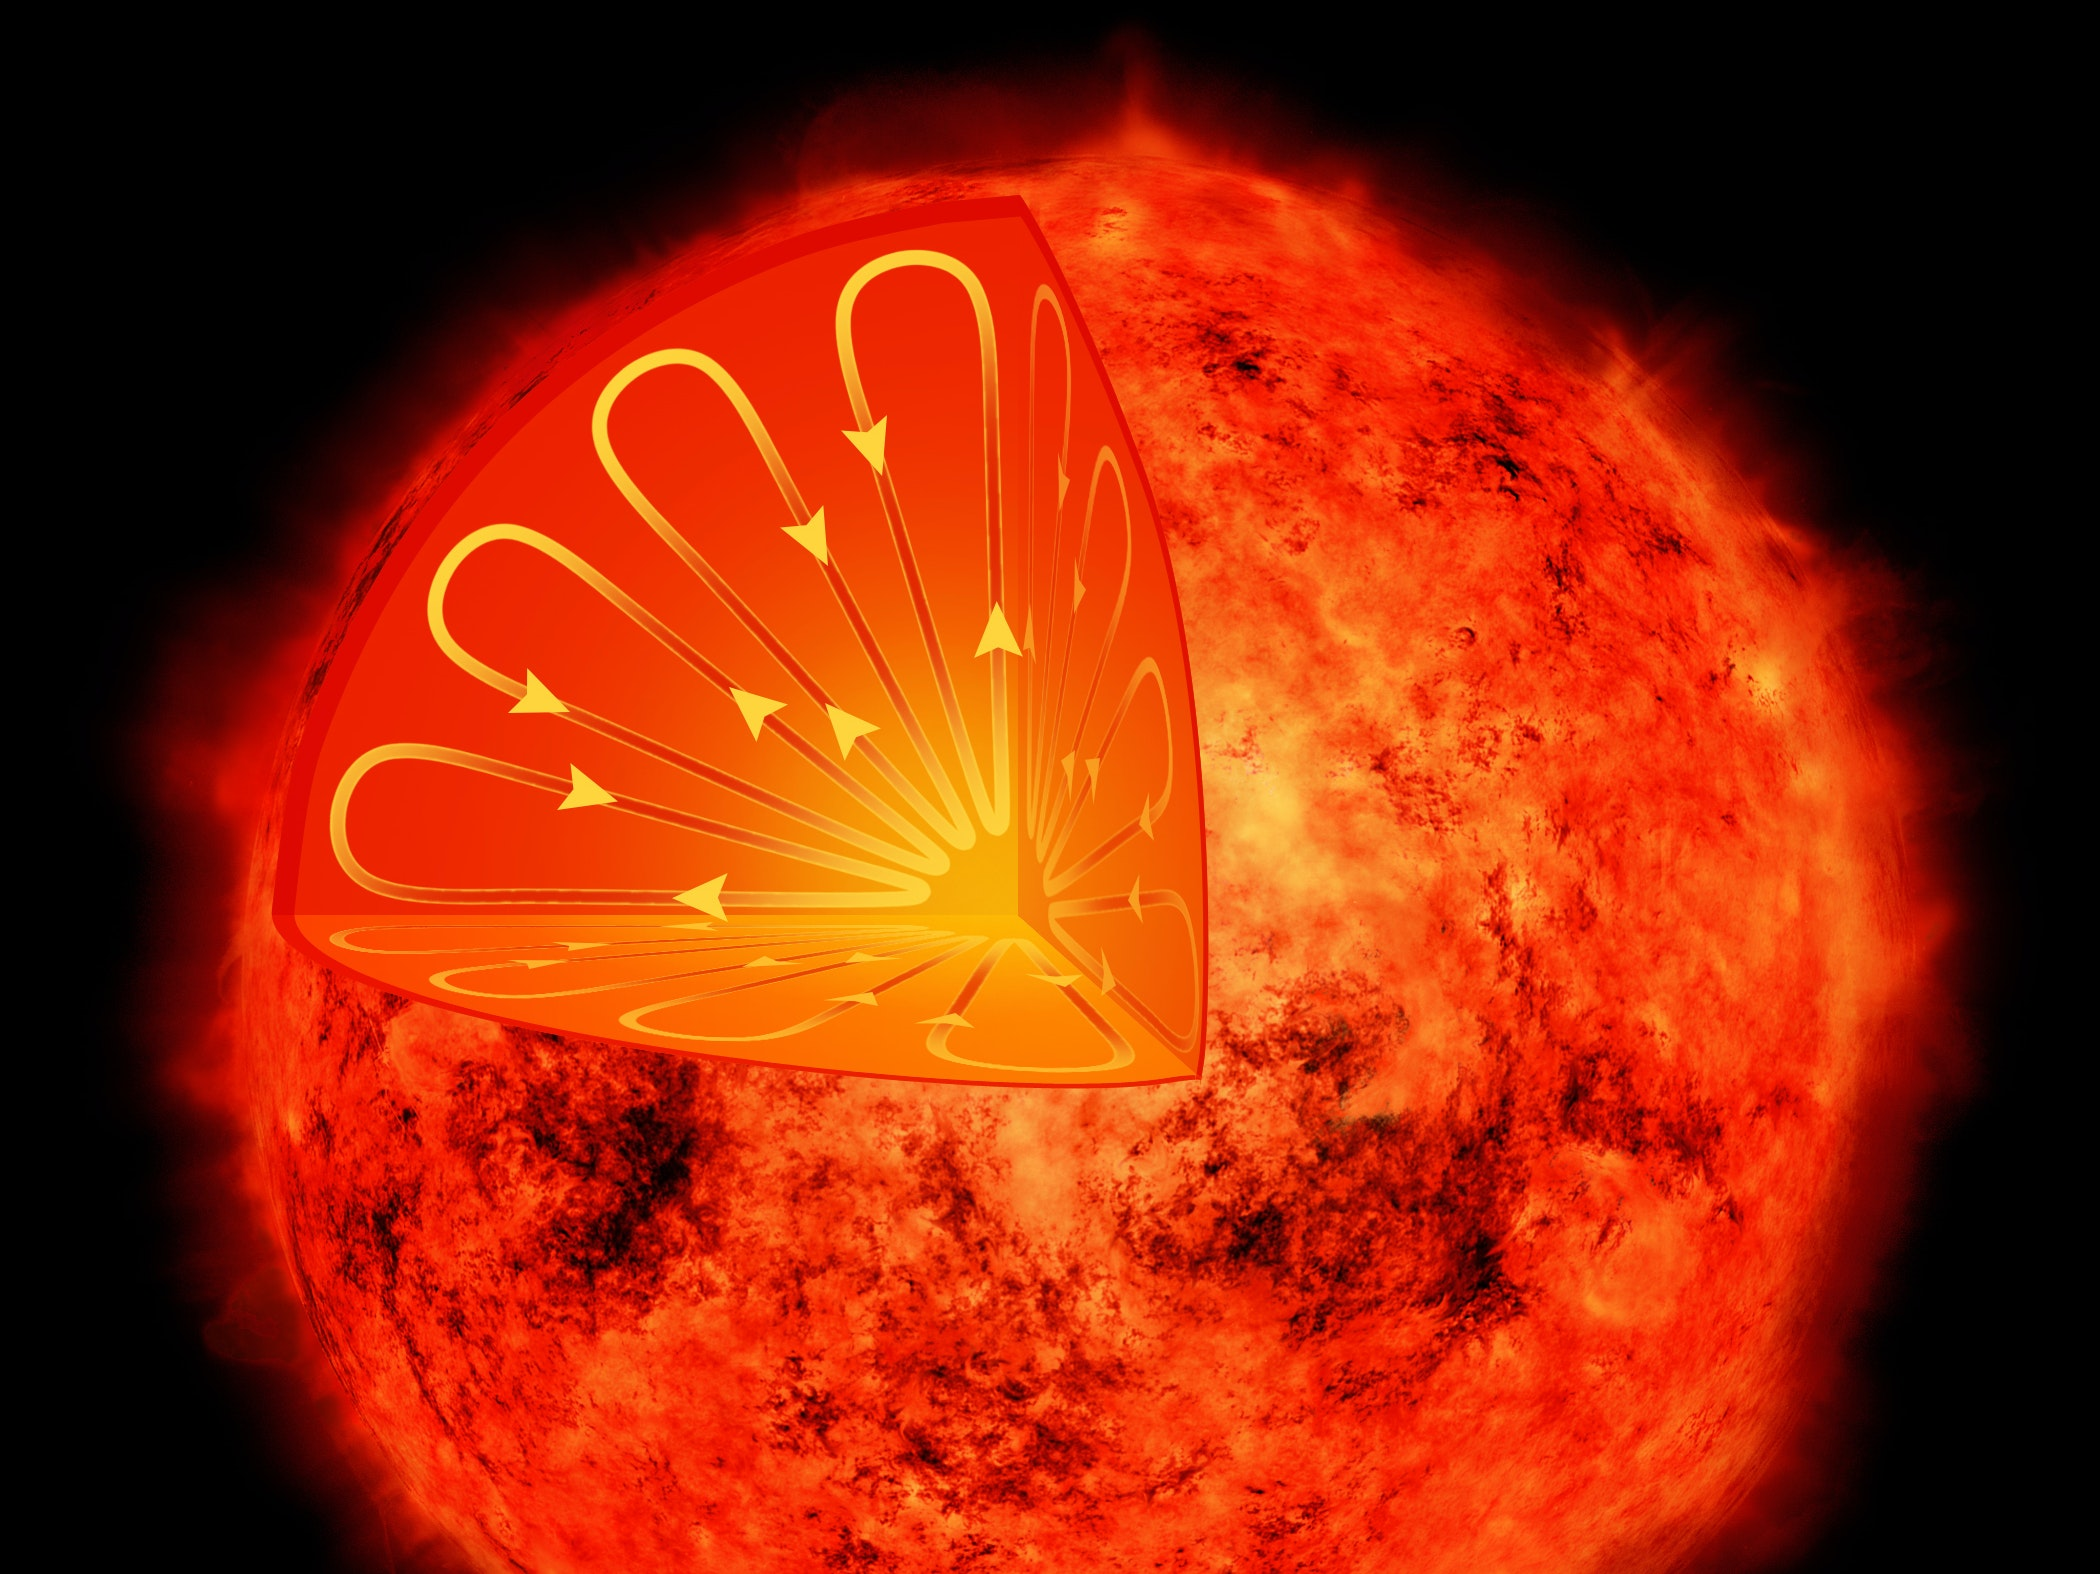 Nearest Star to Earth More Sun-Like than Previously Thought